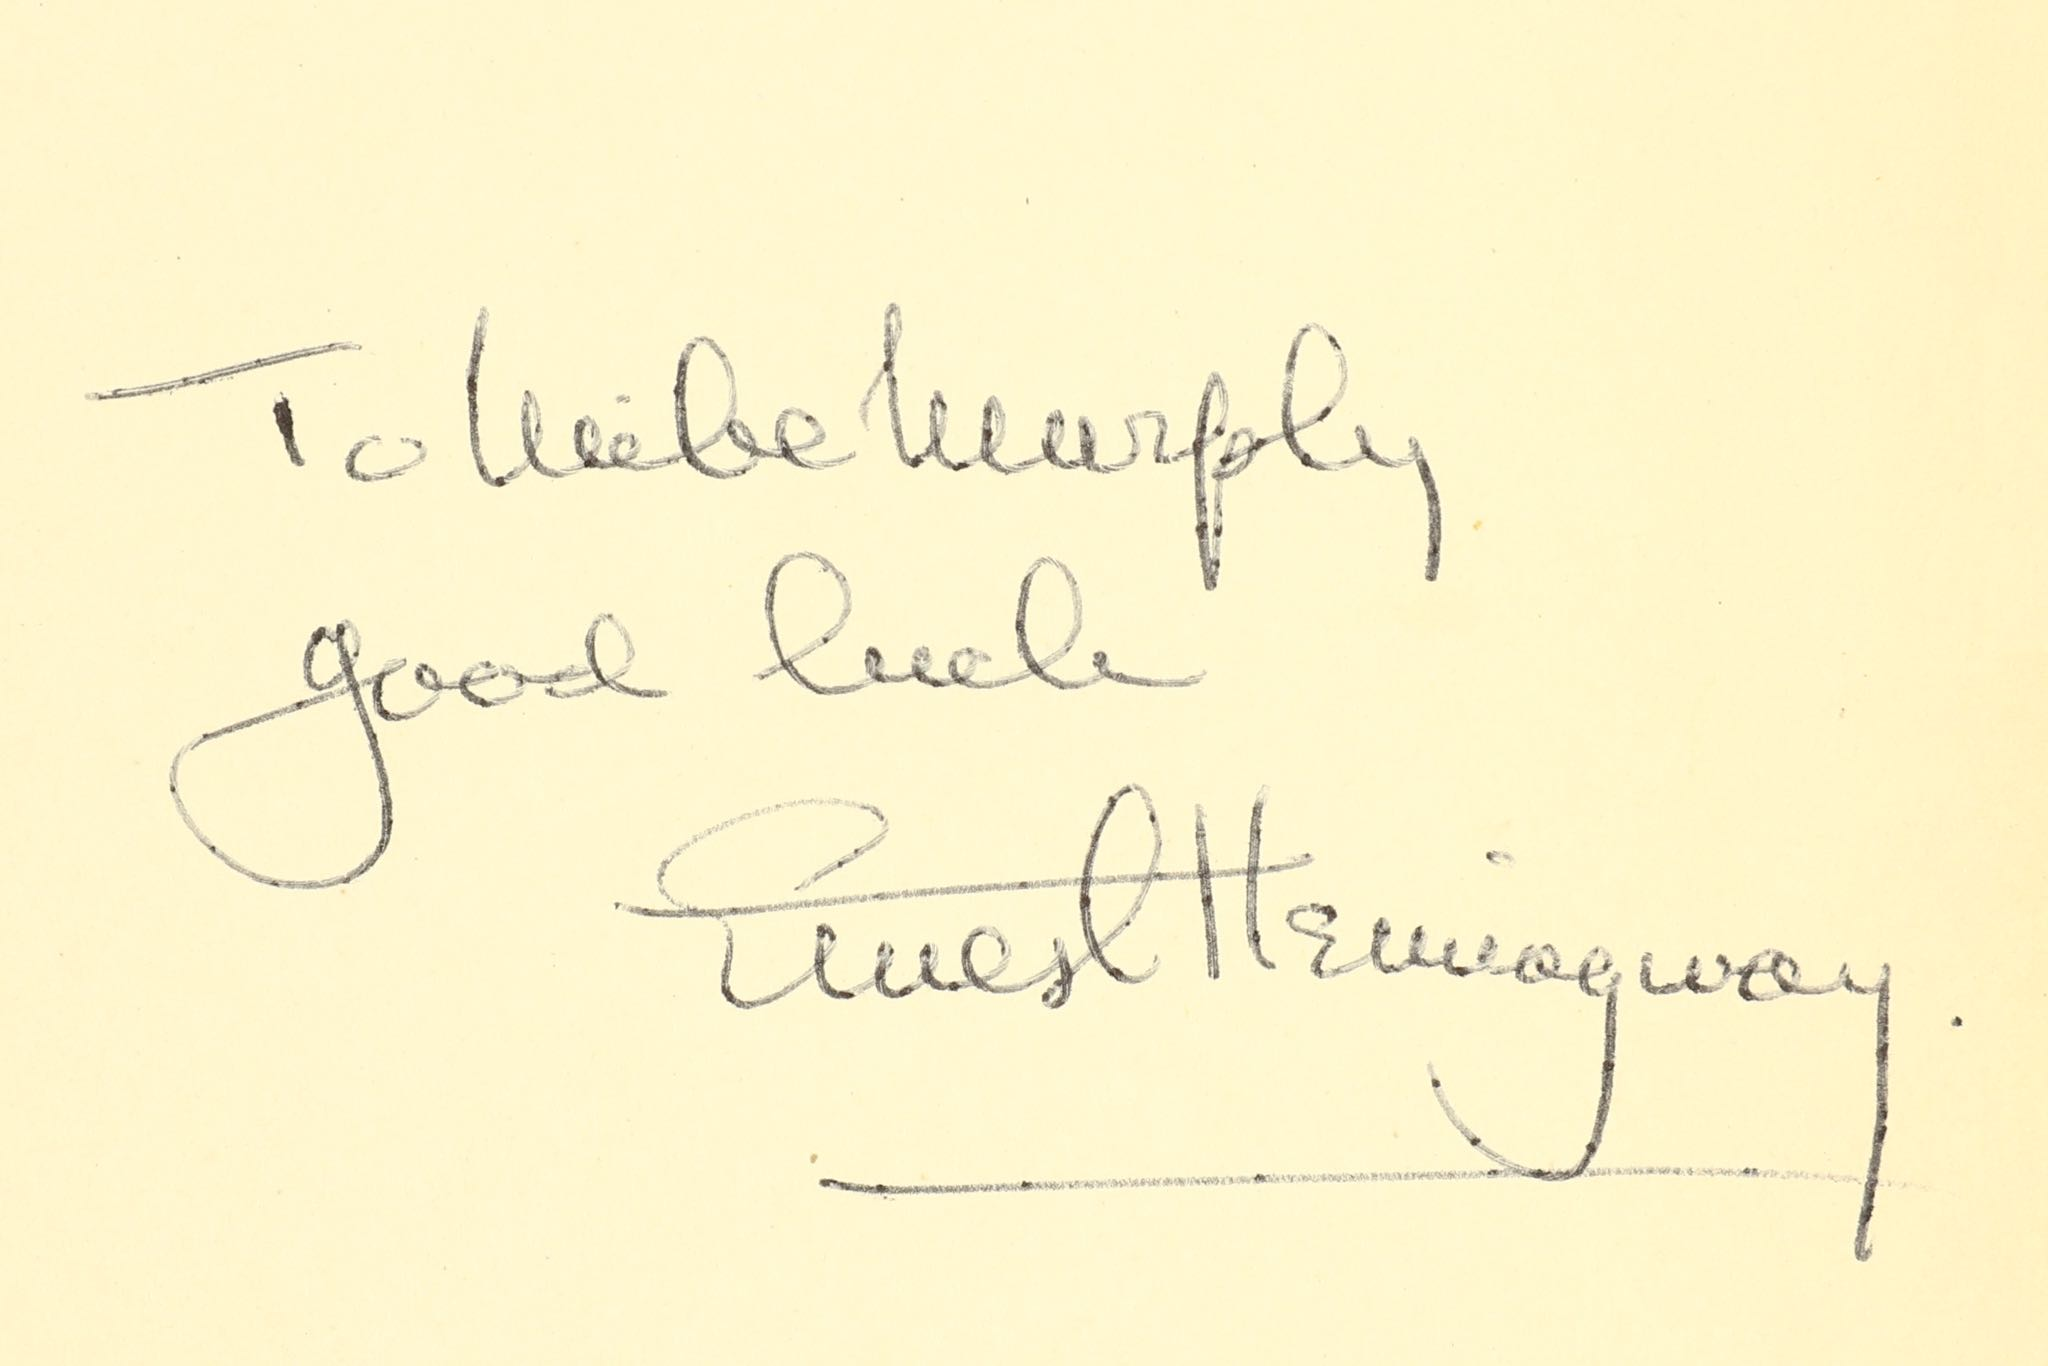 Lot 47 - Hemingway (Ernest) A Farewell to Arms, FIRST EDITION, inscribed by the author 'To Mike Murphy,